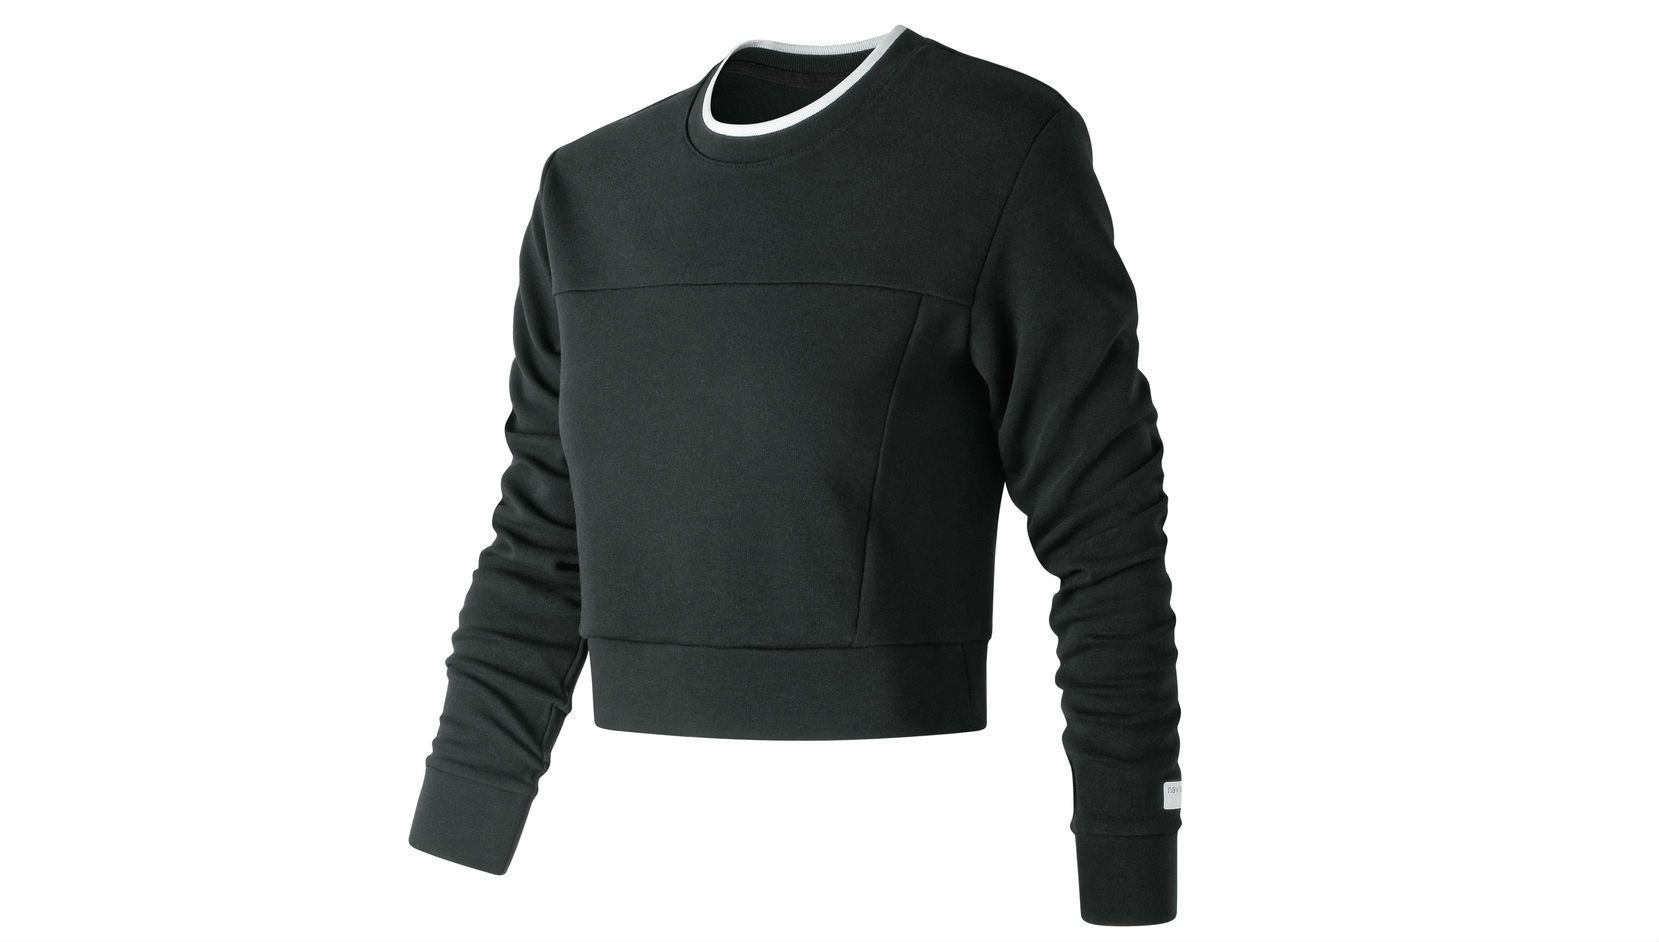 NB ATHLETICS LONG SLEEVE CROP